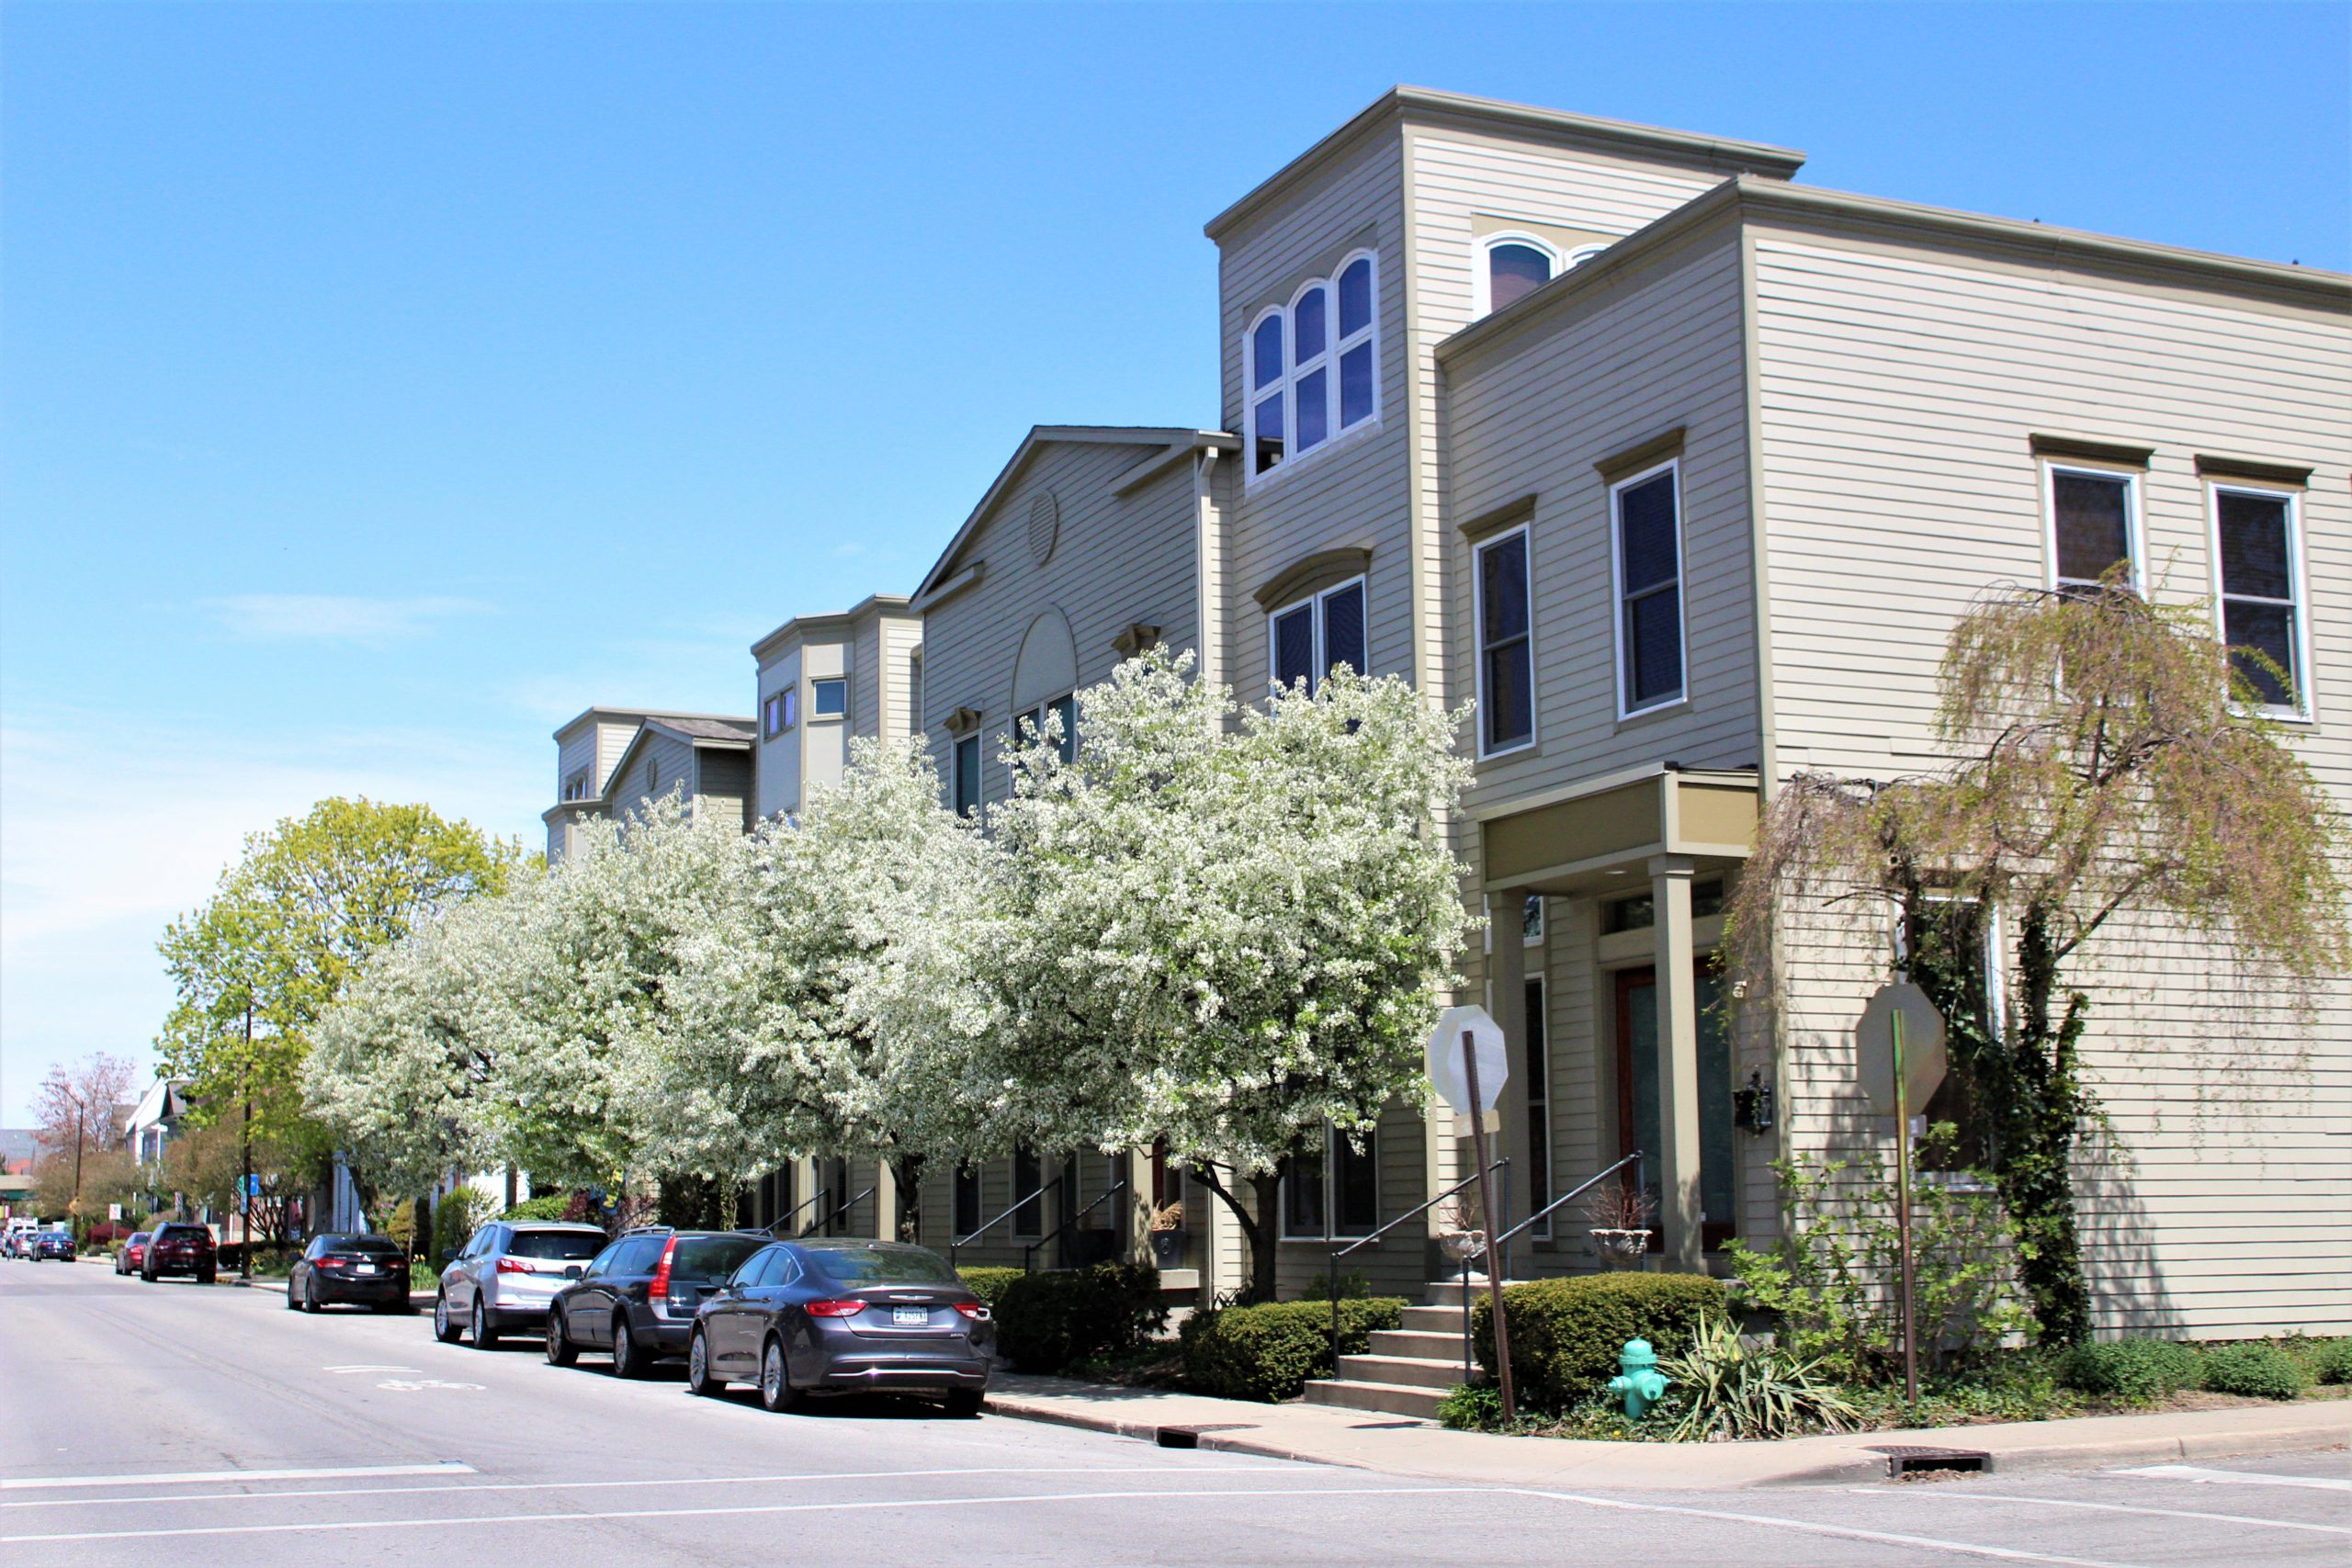 St Joseph Neighborhood - Town Homes